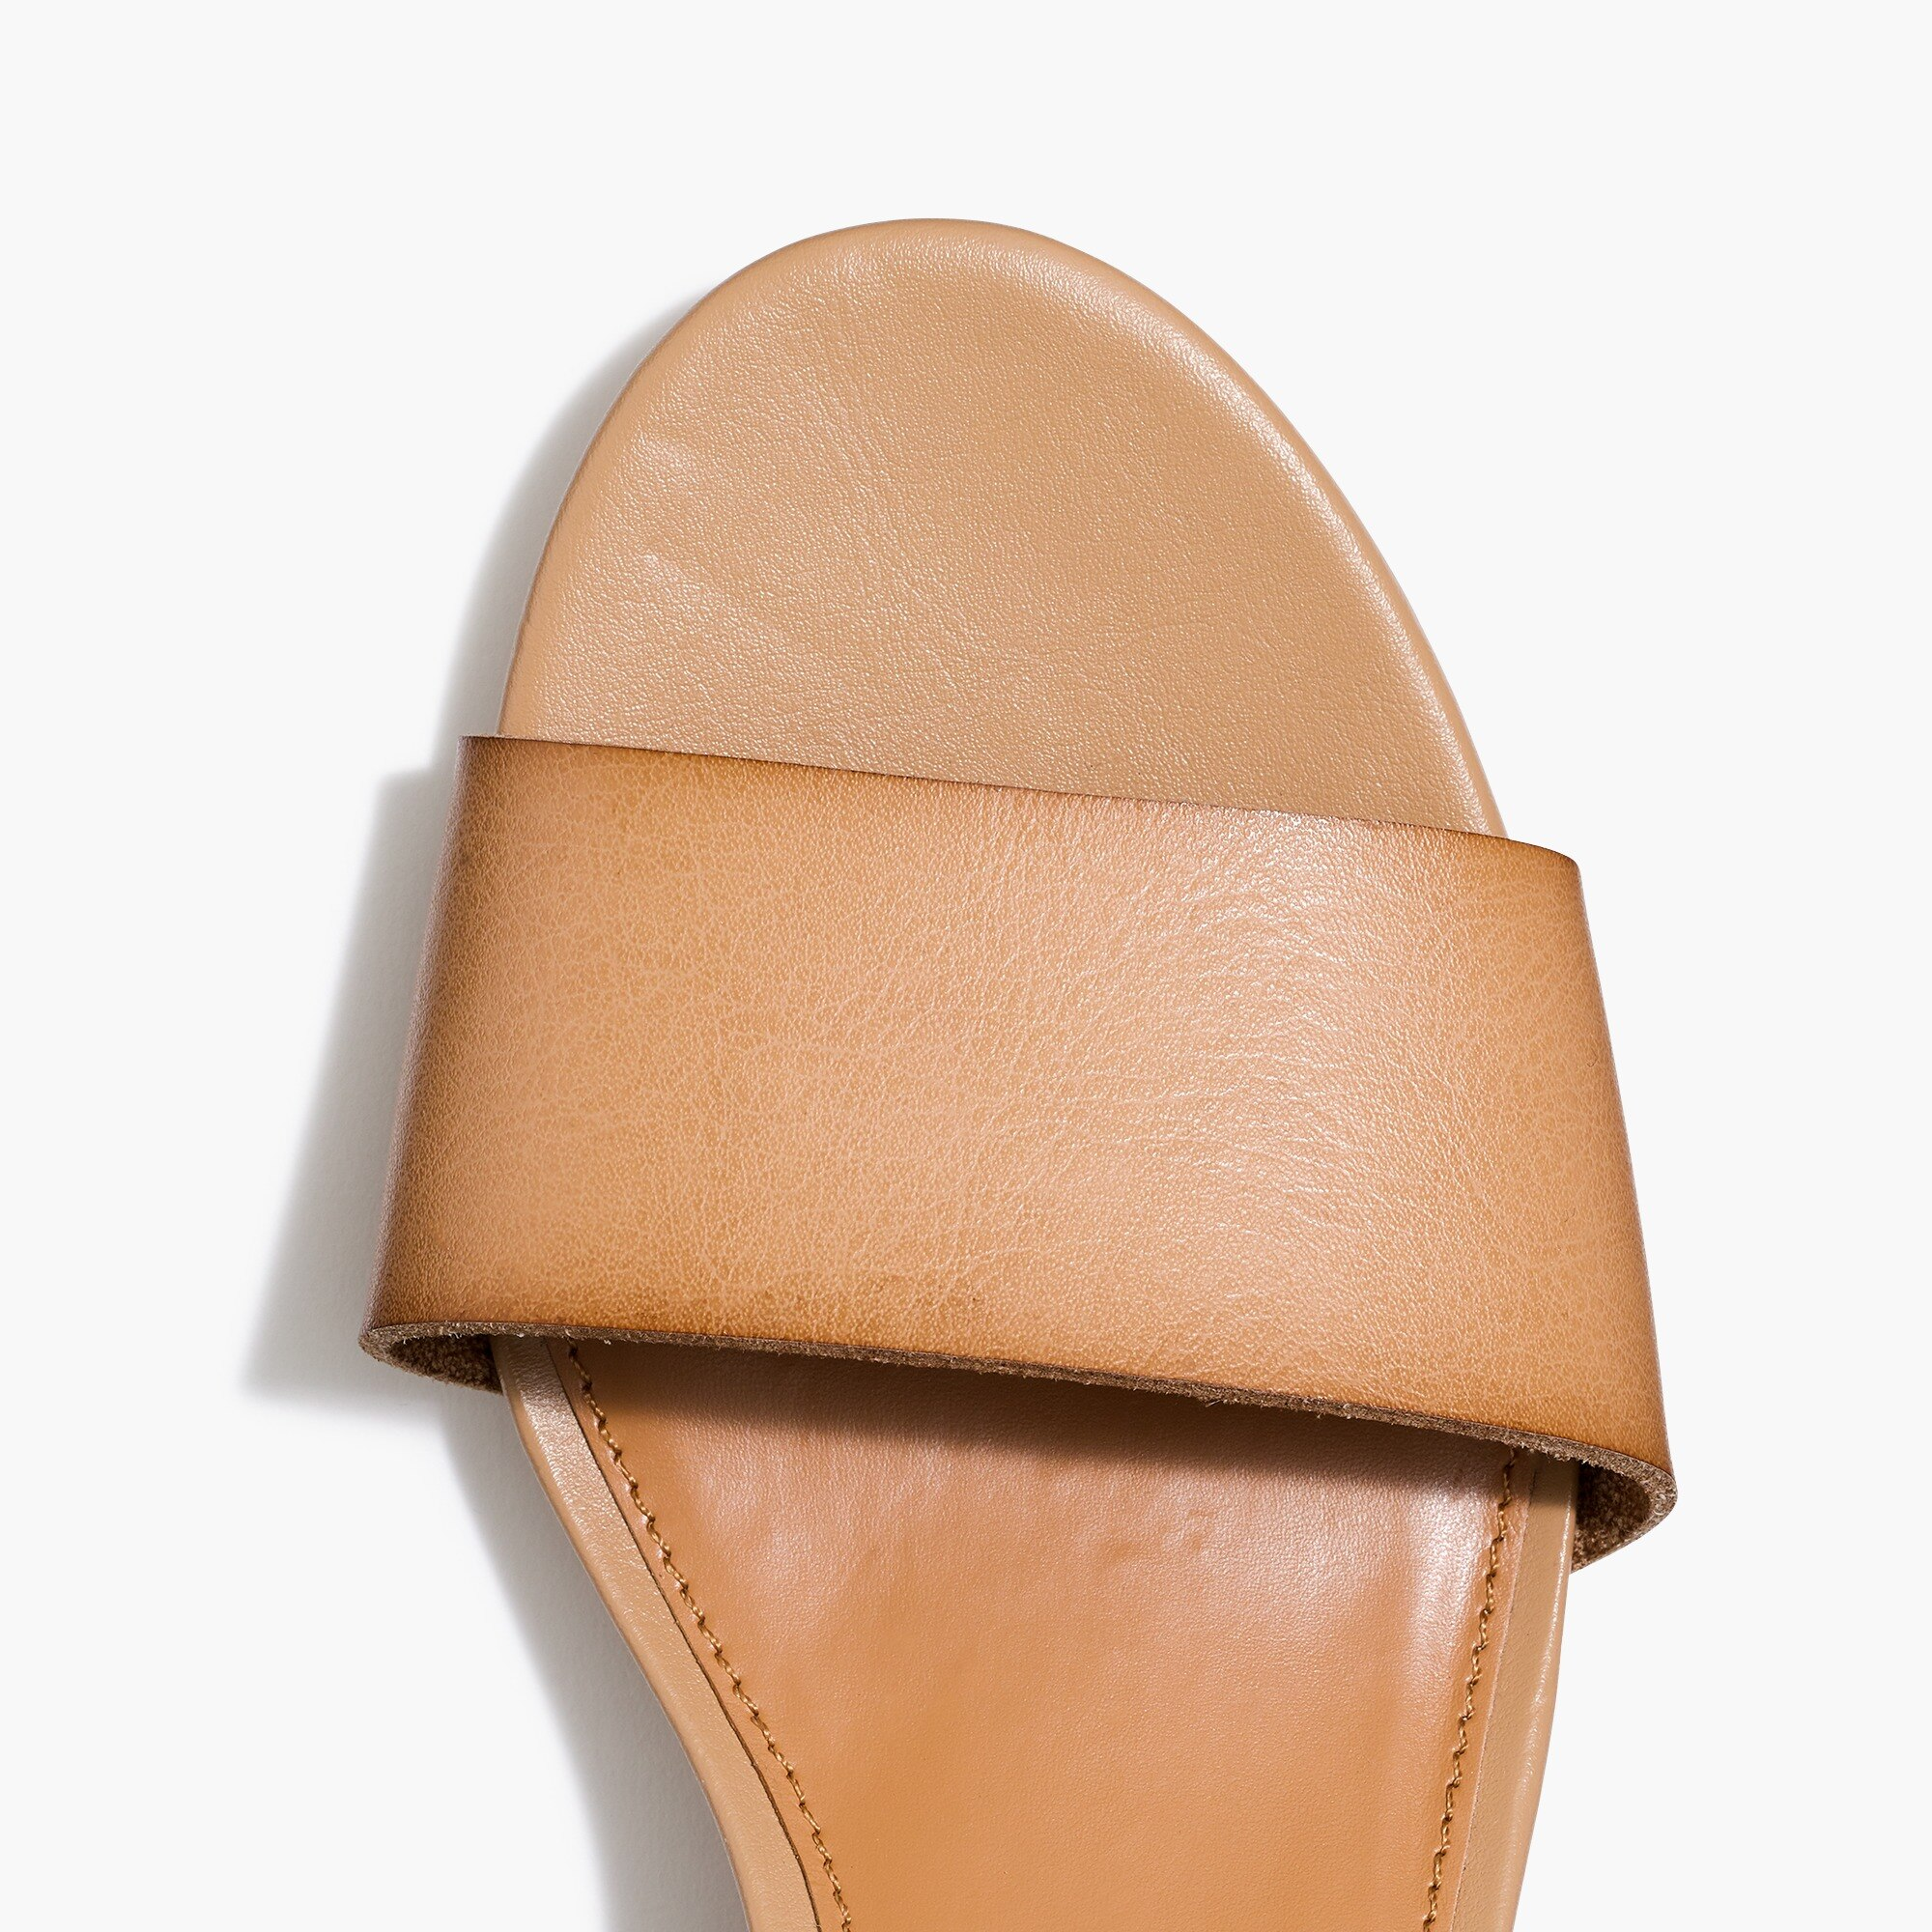 block-heel sandals : factorywomen sandals